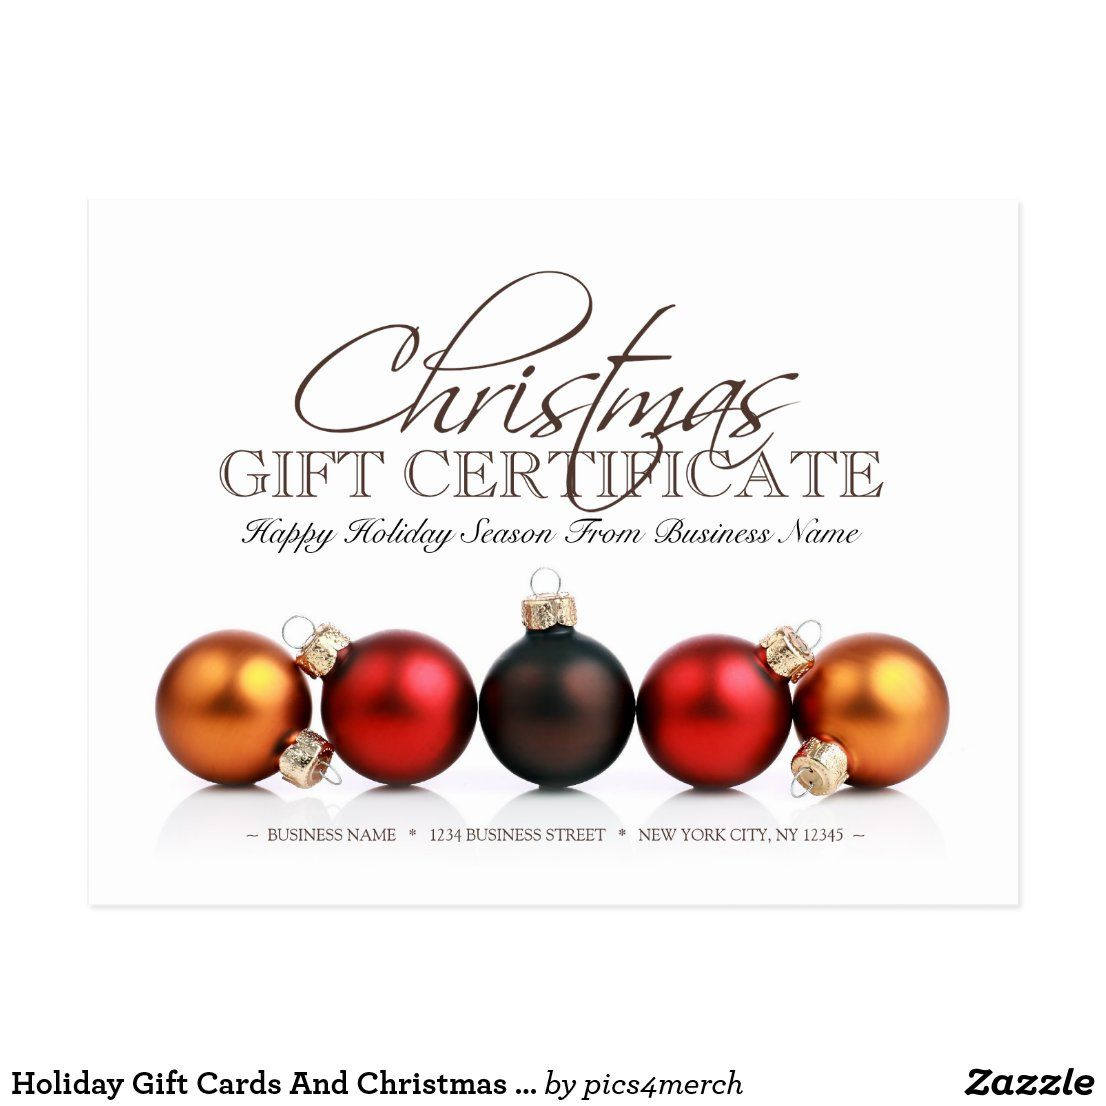 Best Gift Cards For Christmas 2020 Holiday Gift Cards And Christmas Gift Certificates | Zazzle.in